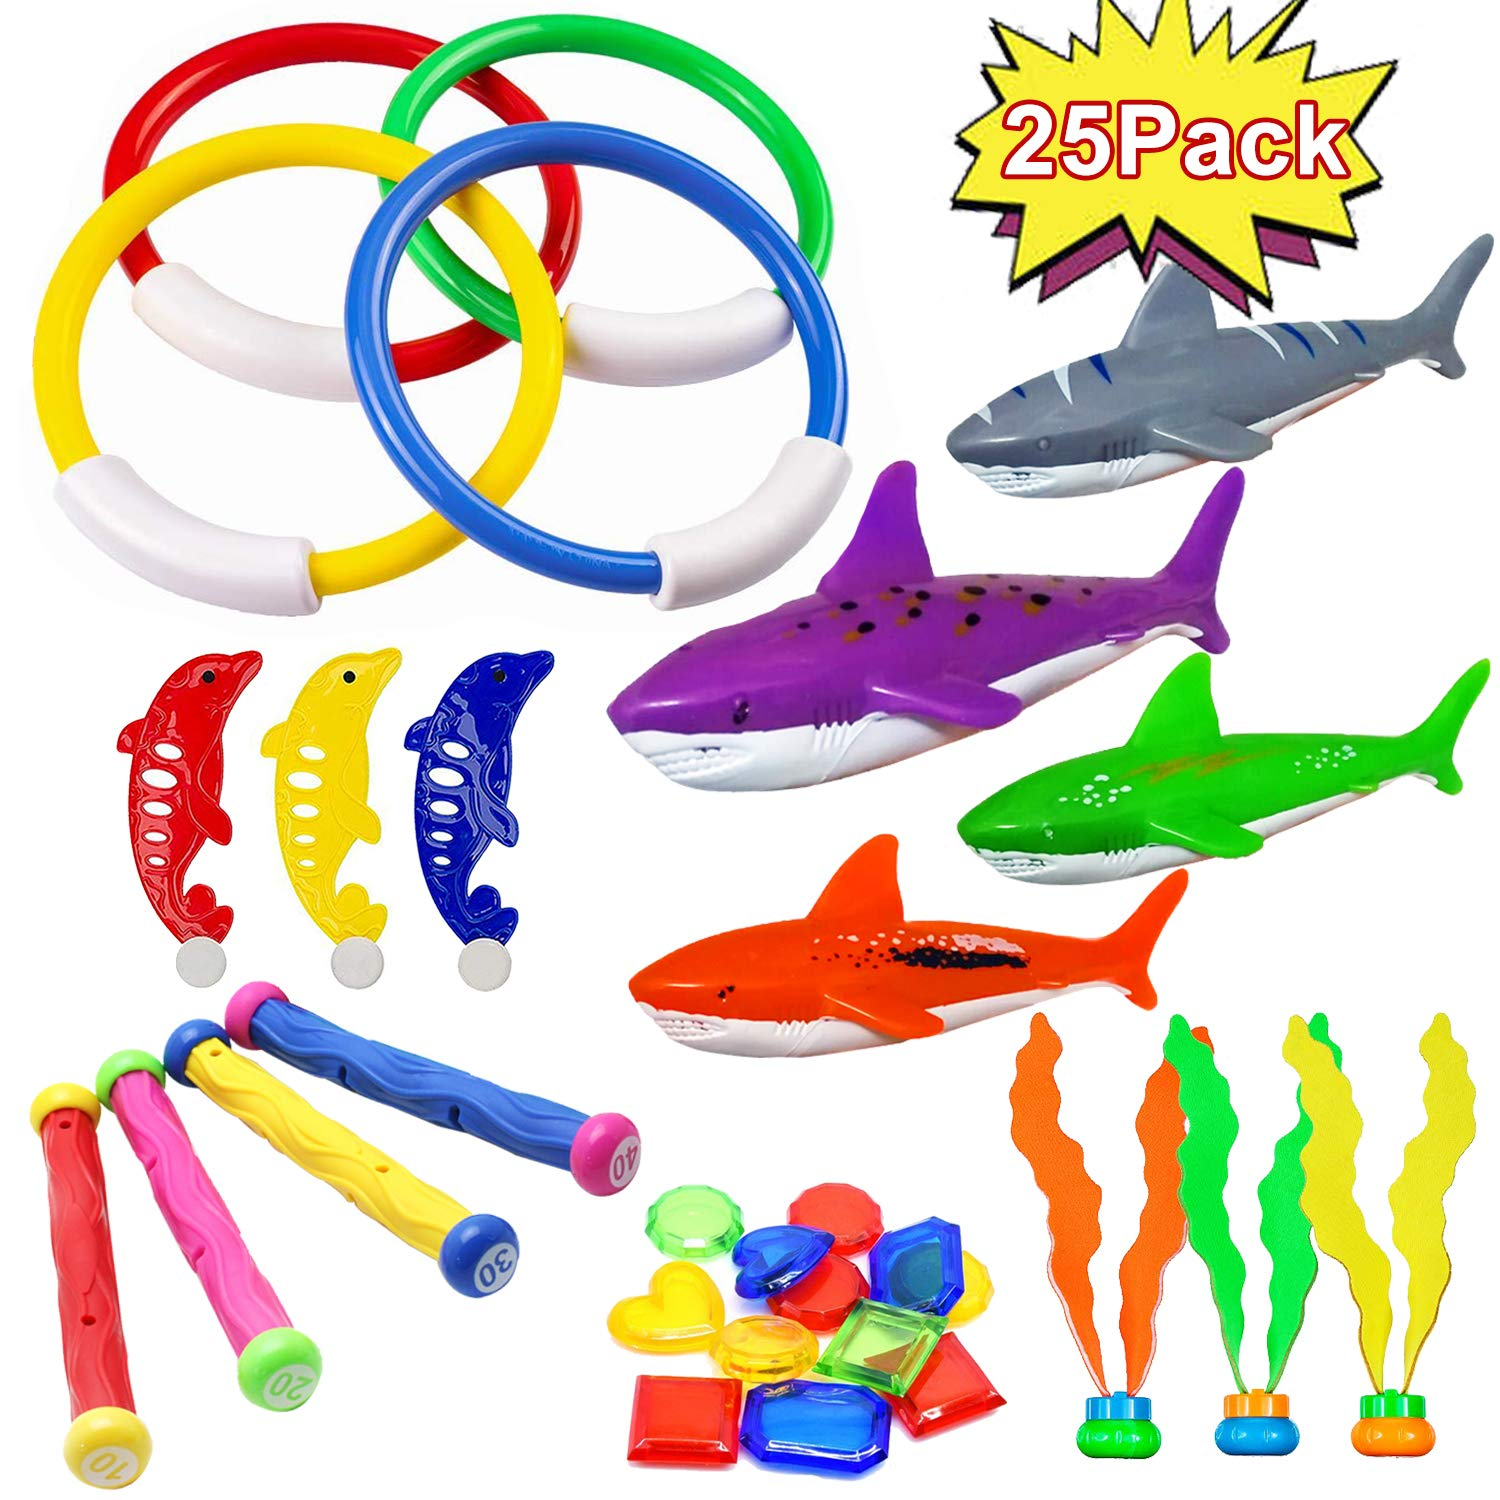 25 PCS Diving Toys for Pool Underwater Swimming Pool Dive Toys Set for Kids-4 Diving Rings 3 Diving Sticks 4 Toypedo Bandits 3 Dolphin 3 Aquatic Dive Balls 8 Treasures Under Water Games Training Gift